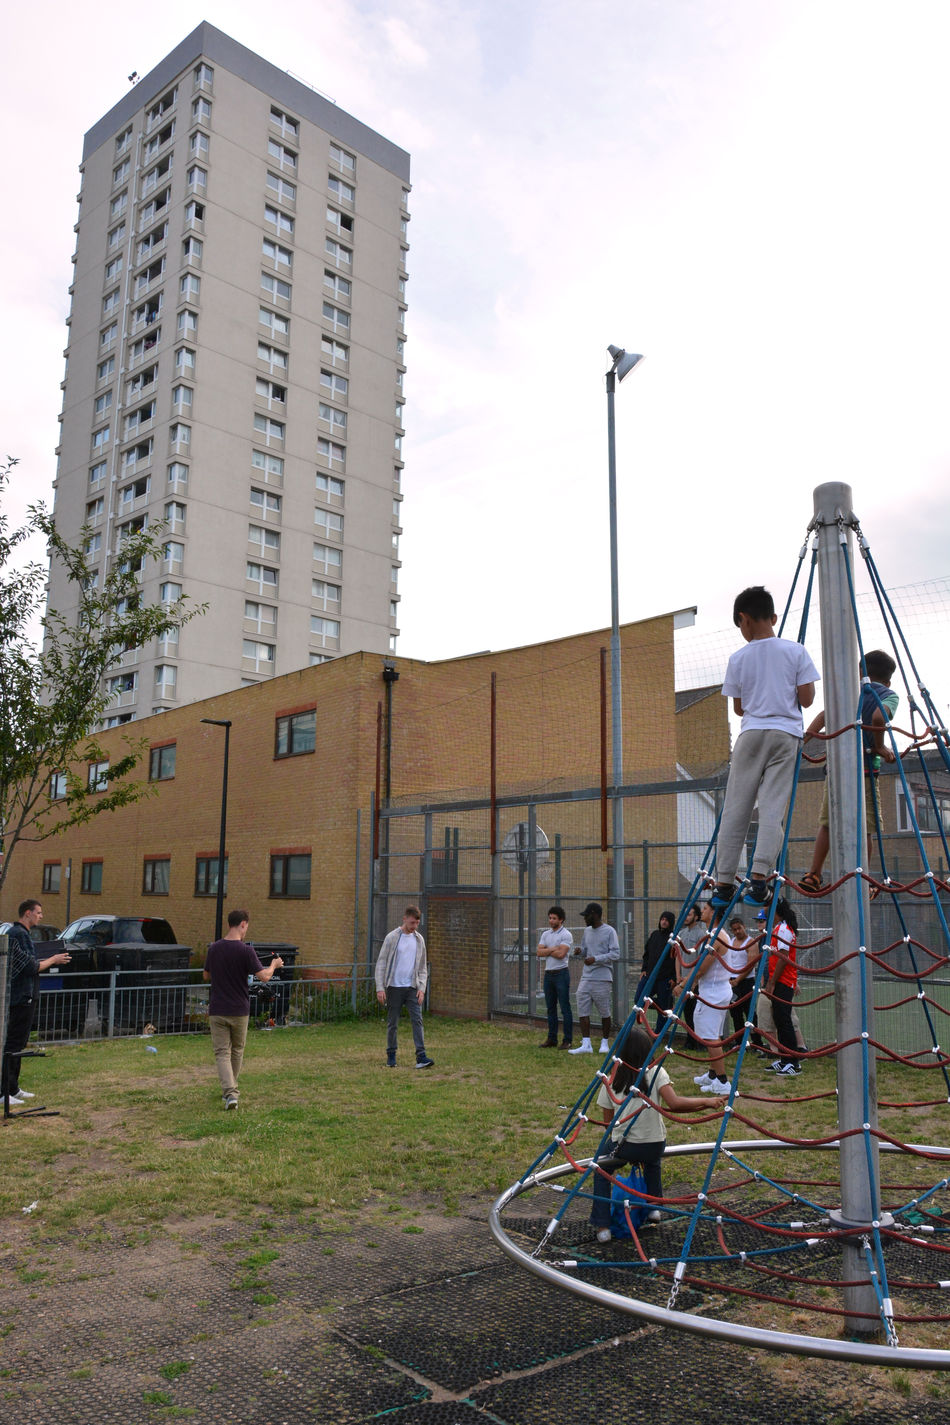 EAST LONDON VIBES Architecture Building Built Structure Casual Clothing Children City City Life Cloud - Sky Day Grass Group Of People Kids Leisure Activity Lifestyles Medium Group Of People Mixed Age Range Outdoors Sky